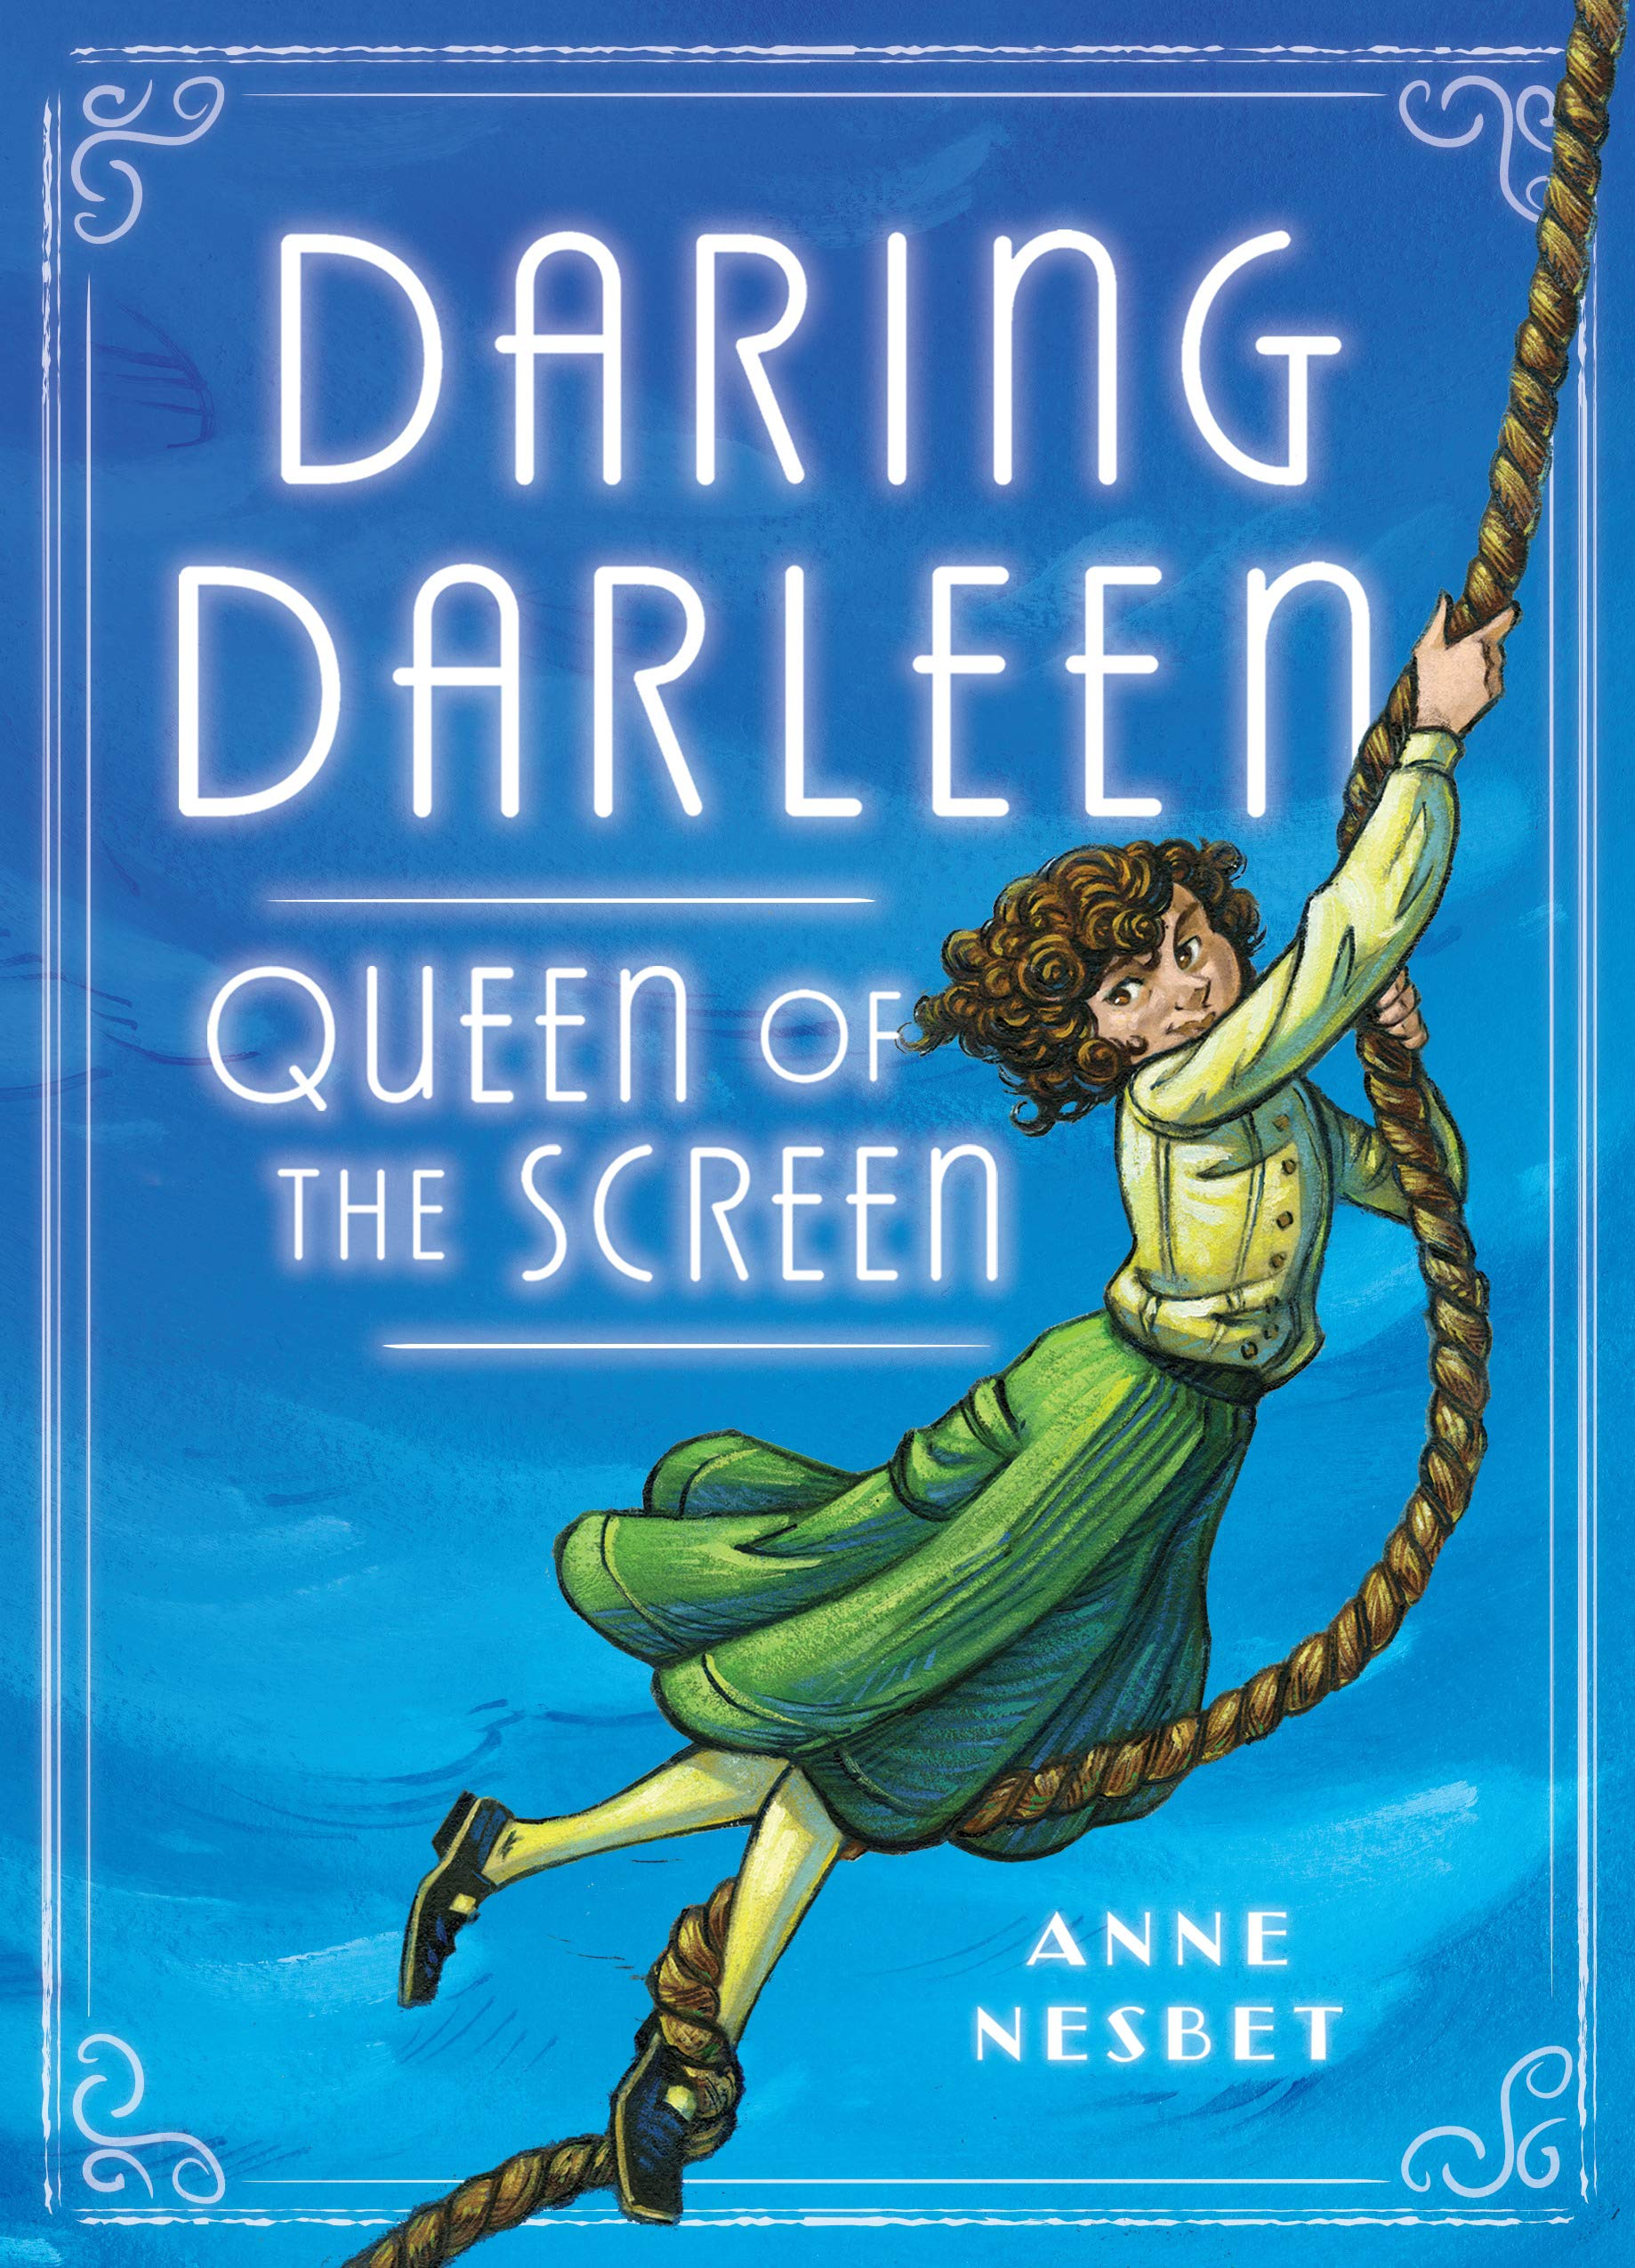 Darling Darleen Queen of the Screen